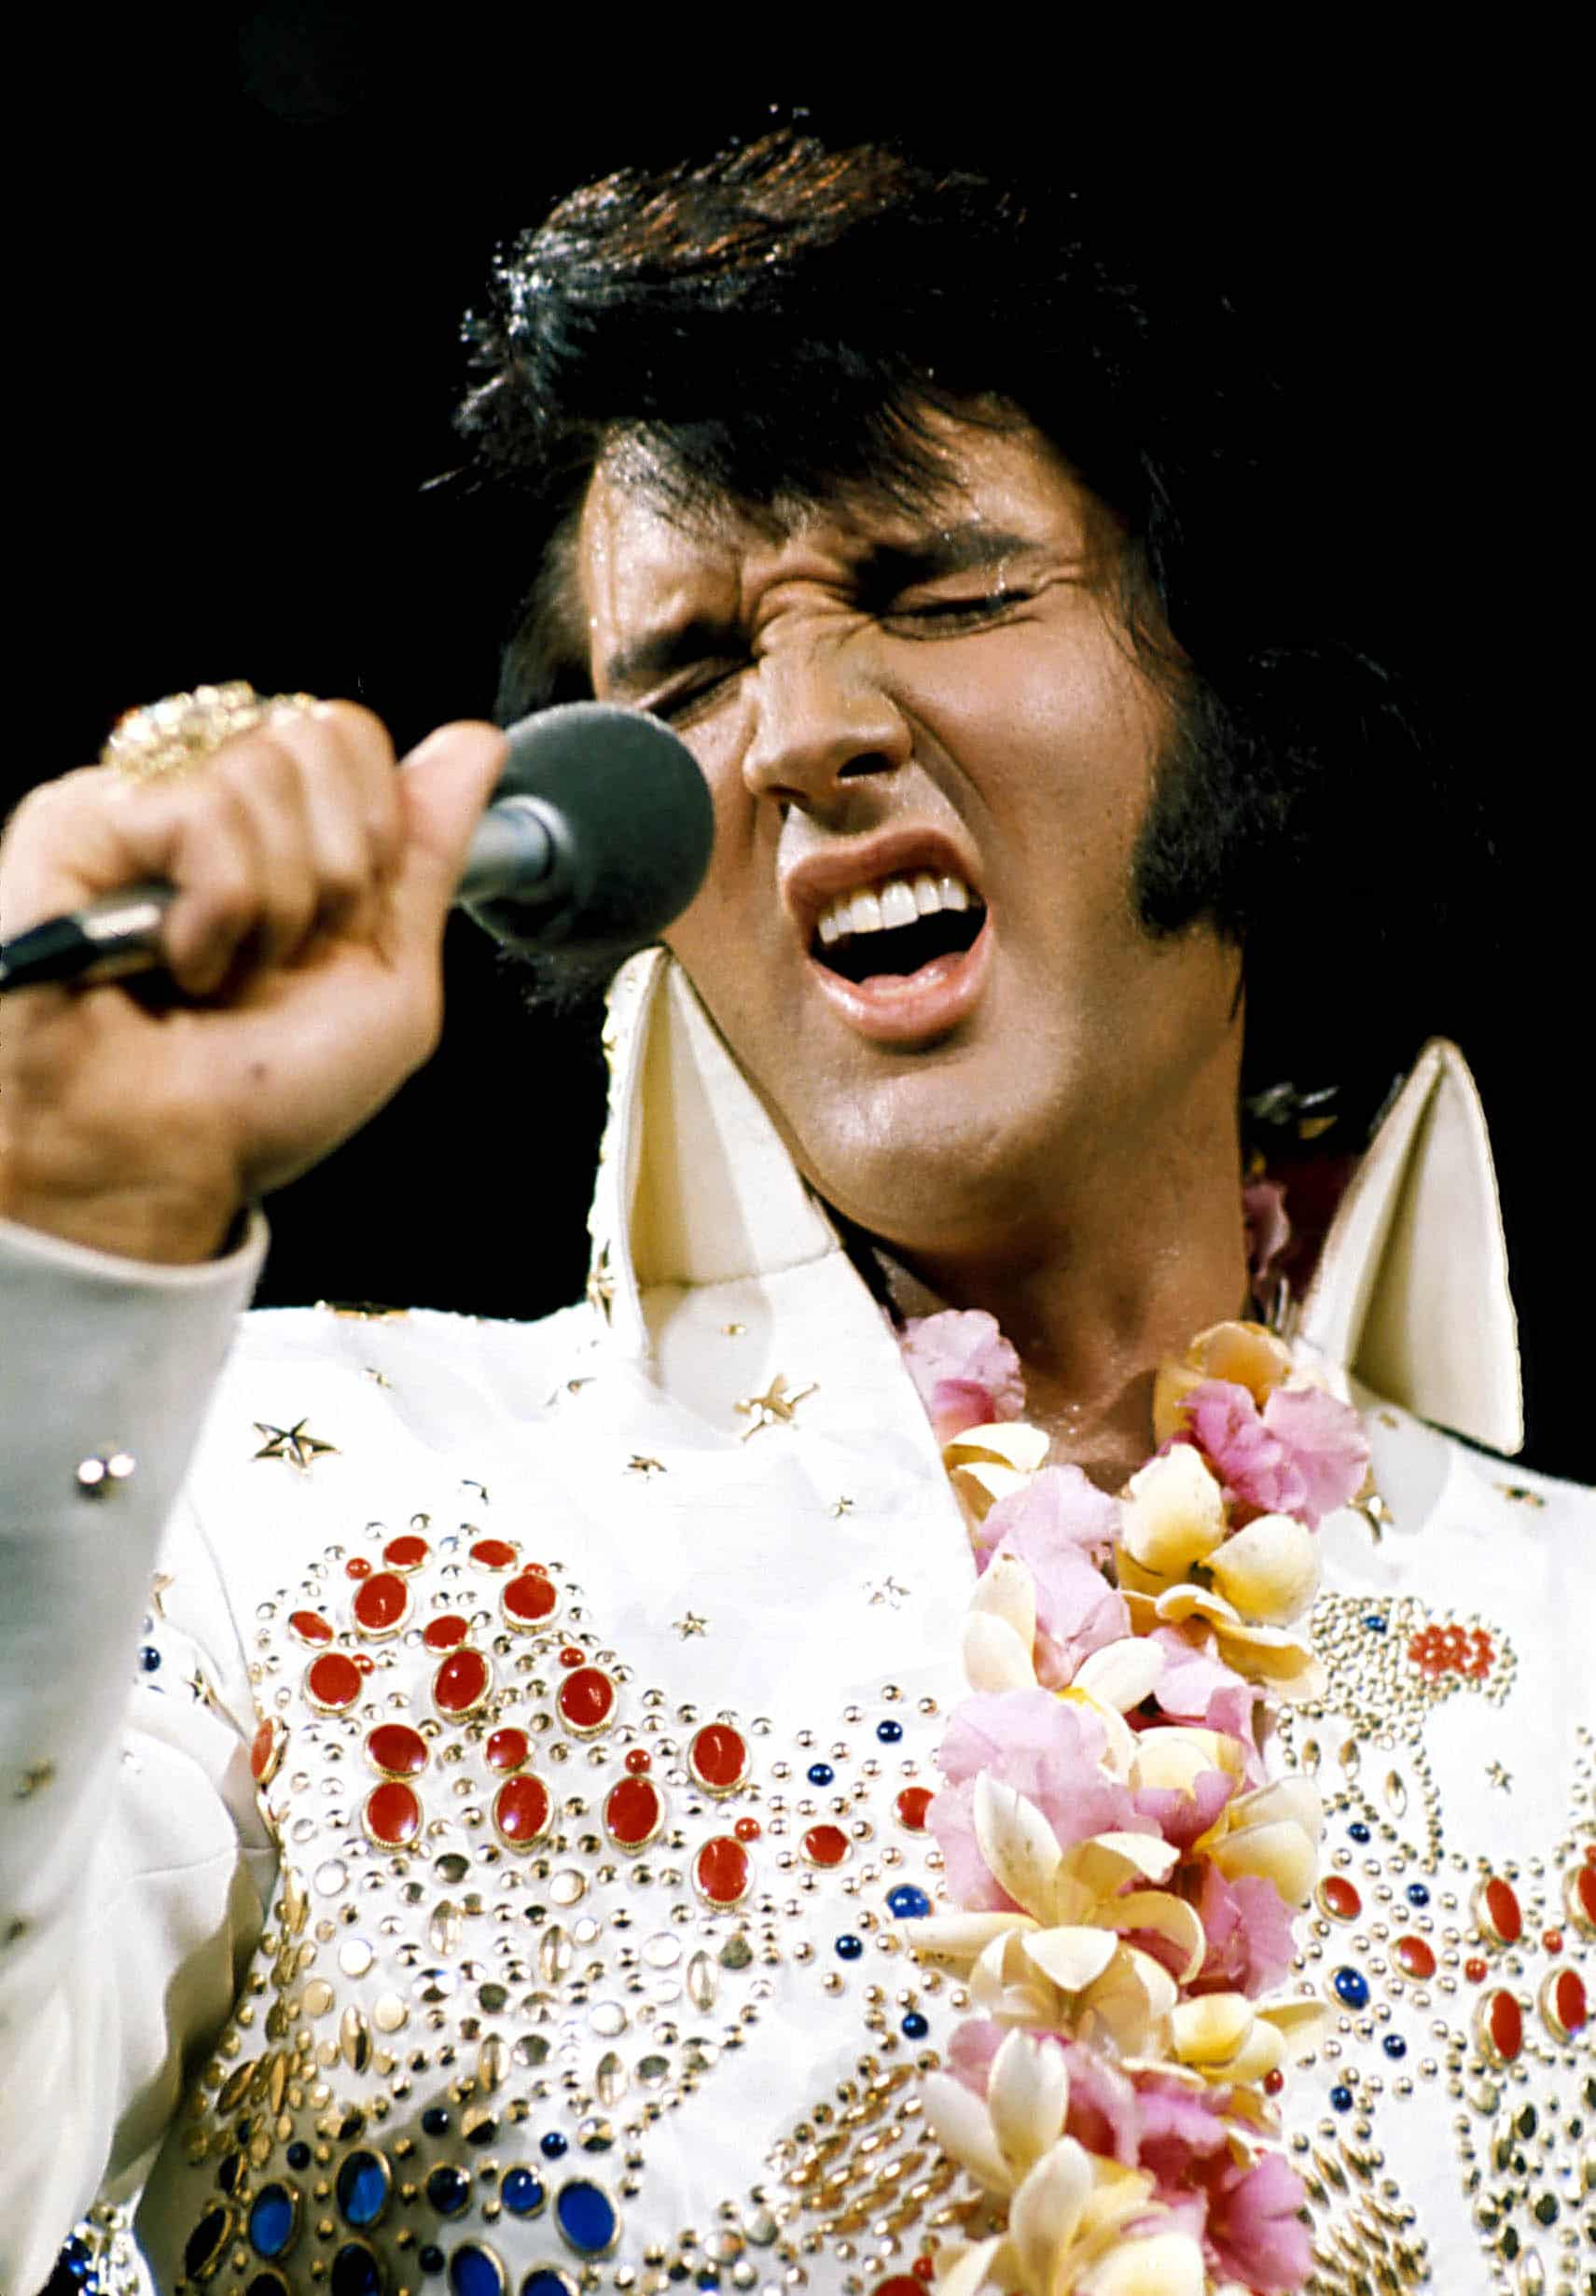 Marking The Anniversary Of Elvis Presley's Death, Over 700 Fans Expected To Attend Vigil